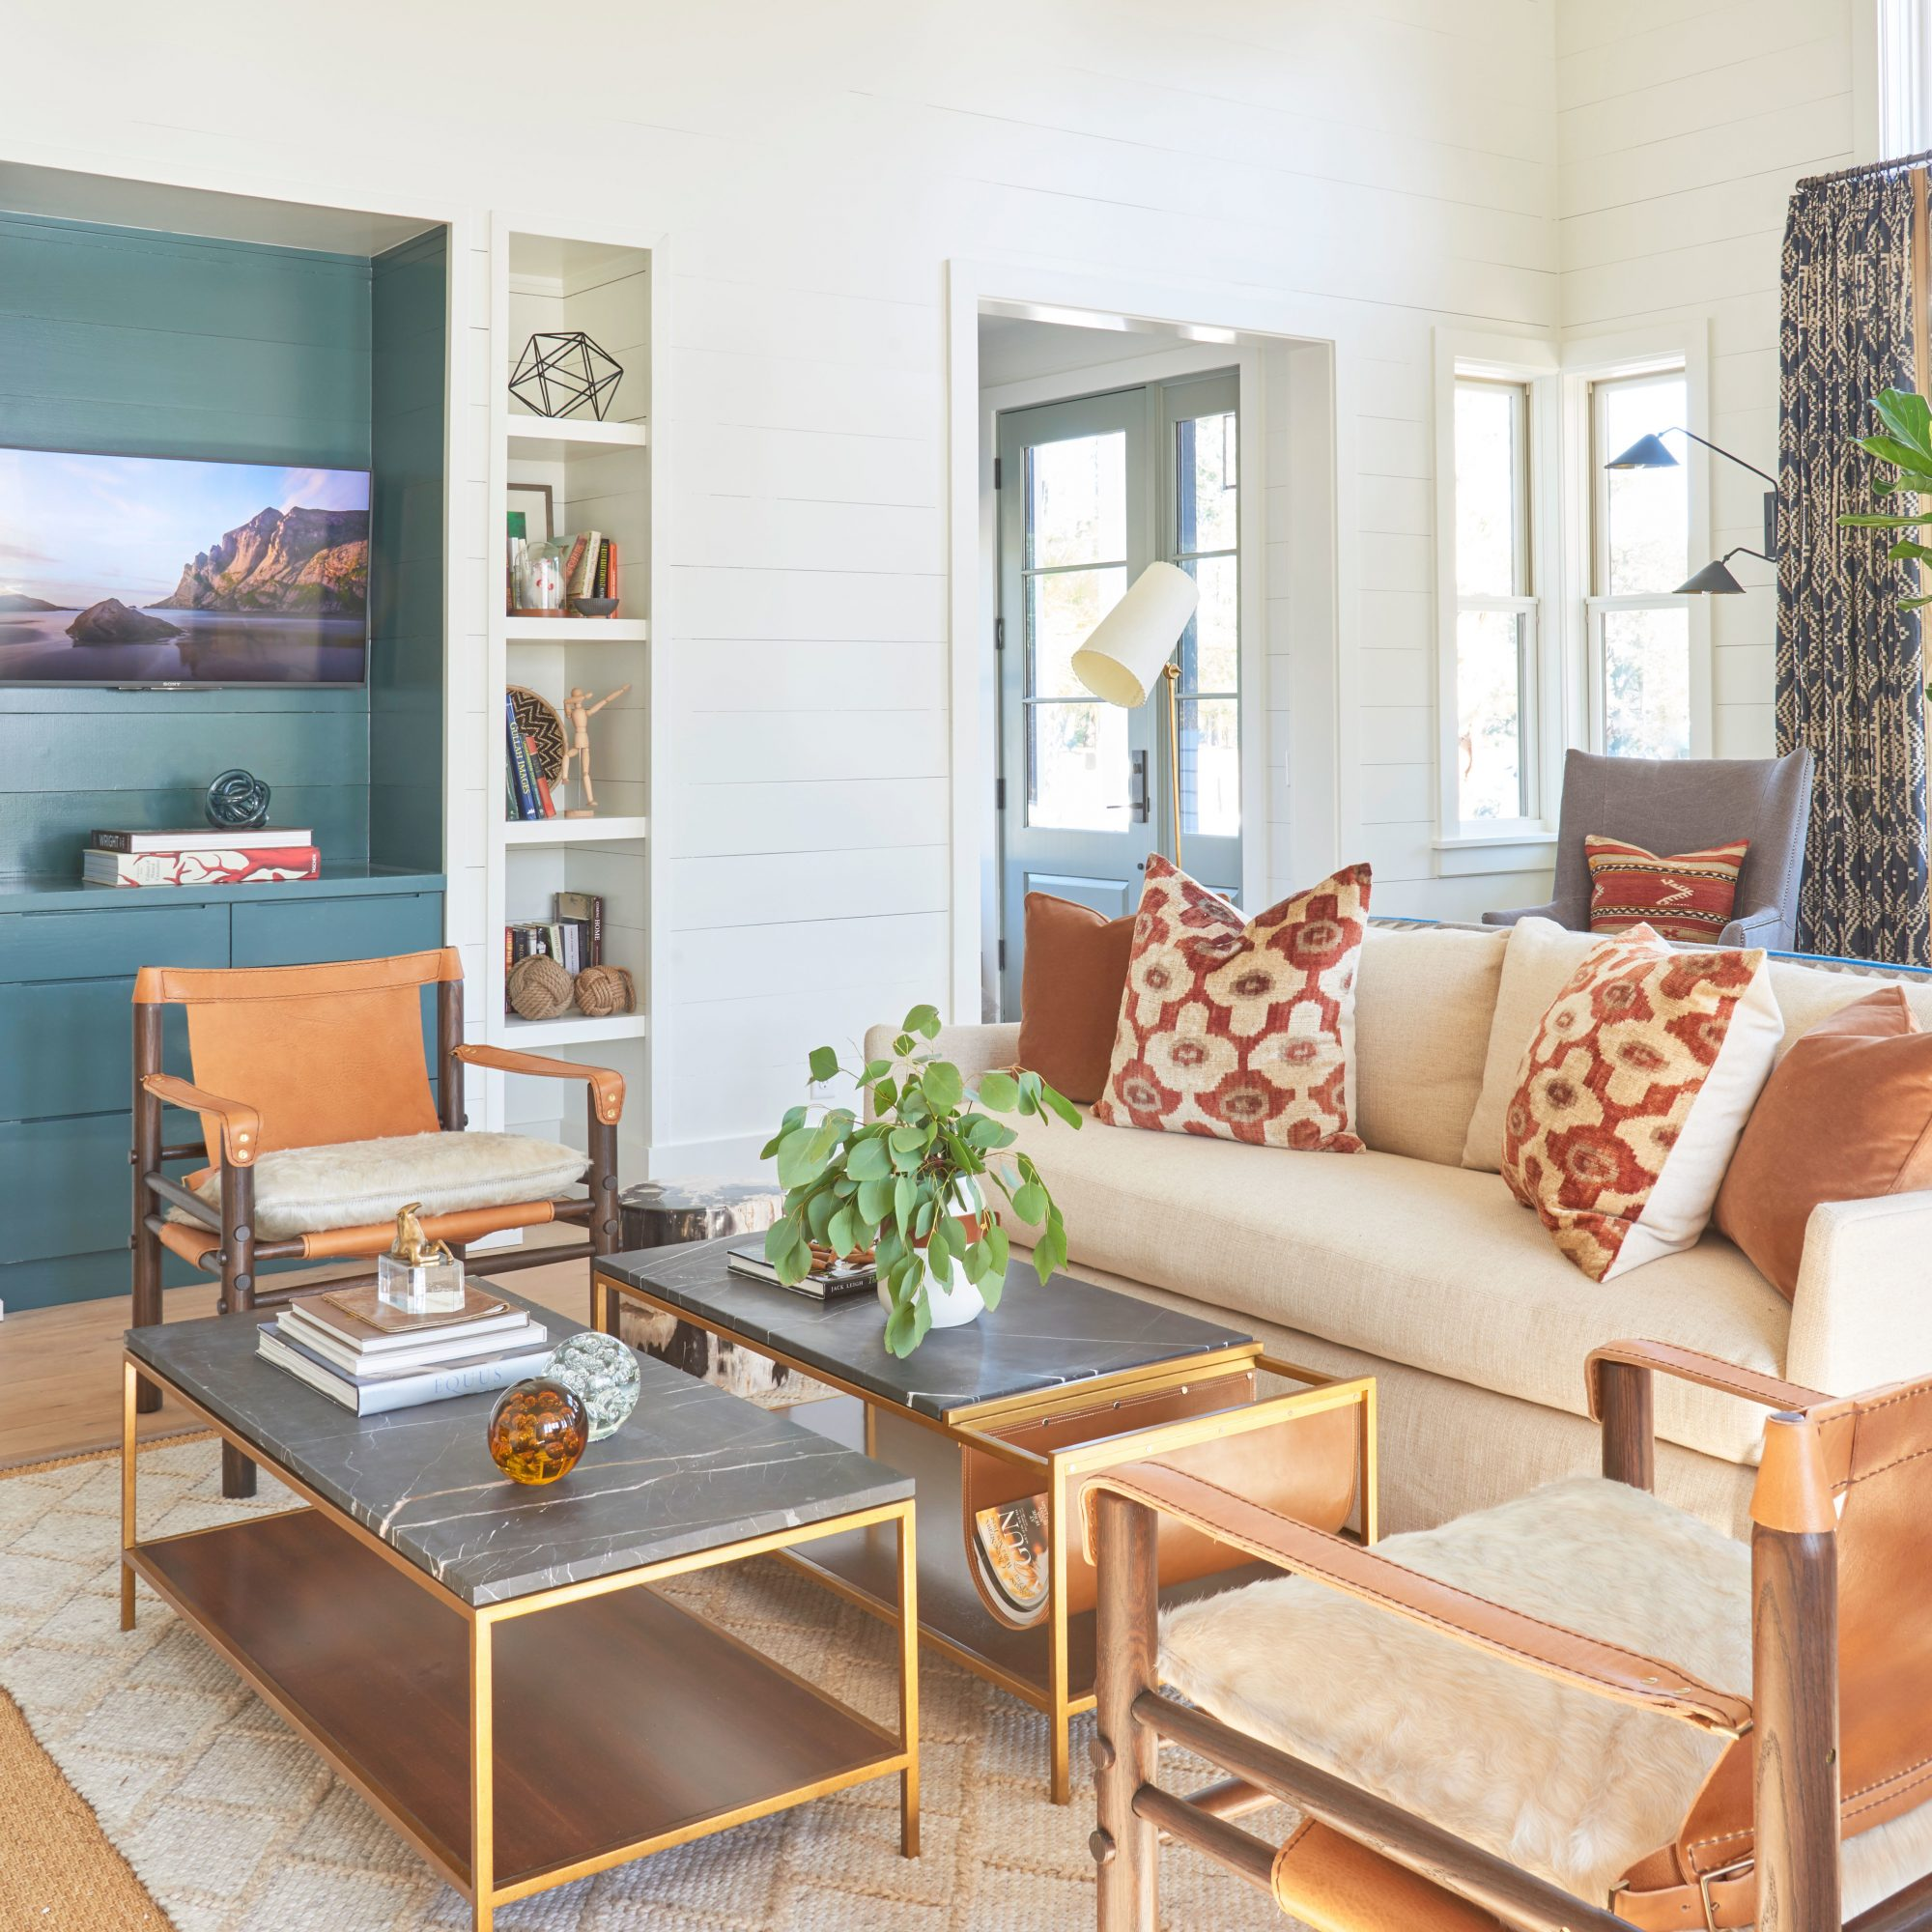 A living room with light wood floors, white shiplap walls, a teal recess, and bronze, wood, and leather furnishings in a contemporary Lowcountry home.